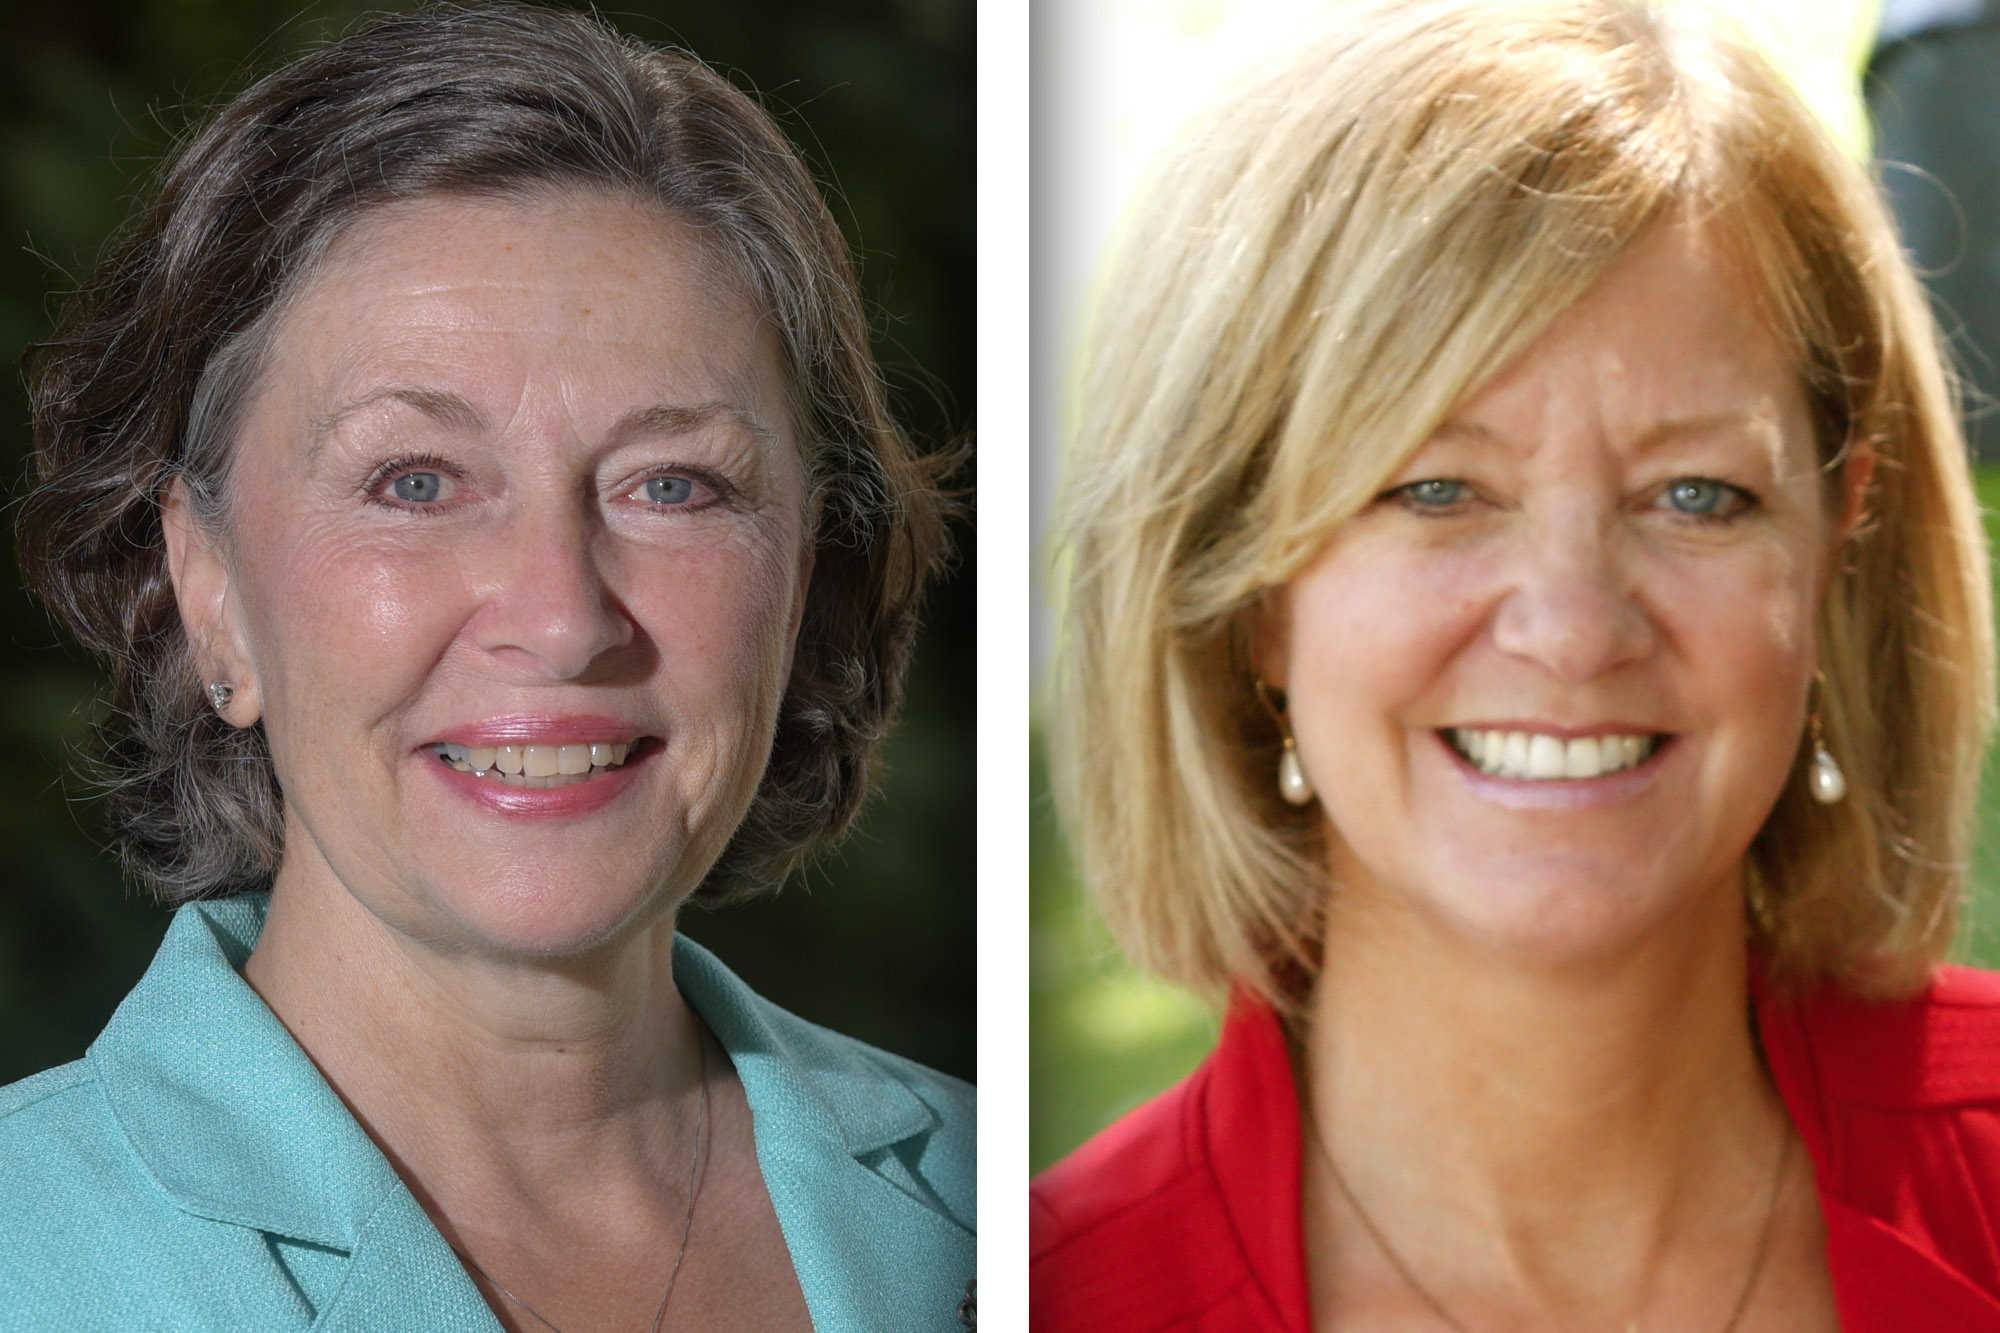 Democrat Kathleen Carrier and Republican Jeanne Ives are candidates for 42nd House Distric.t